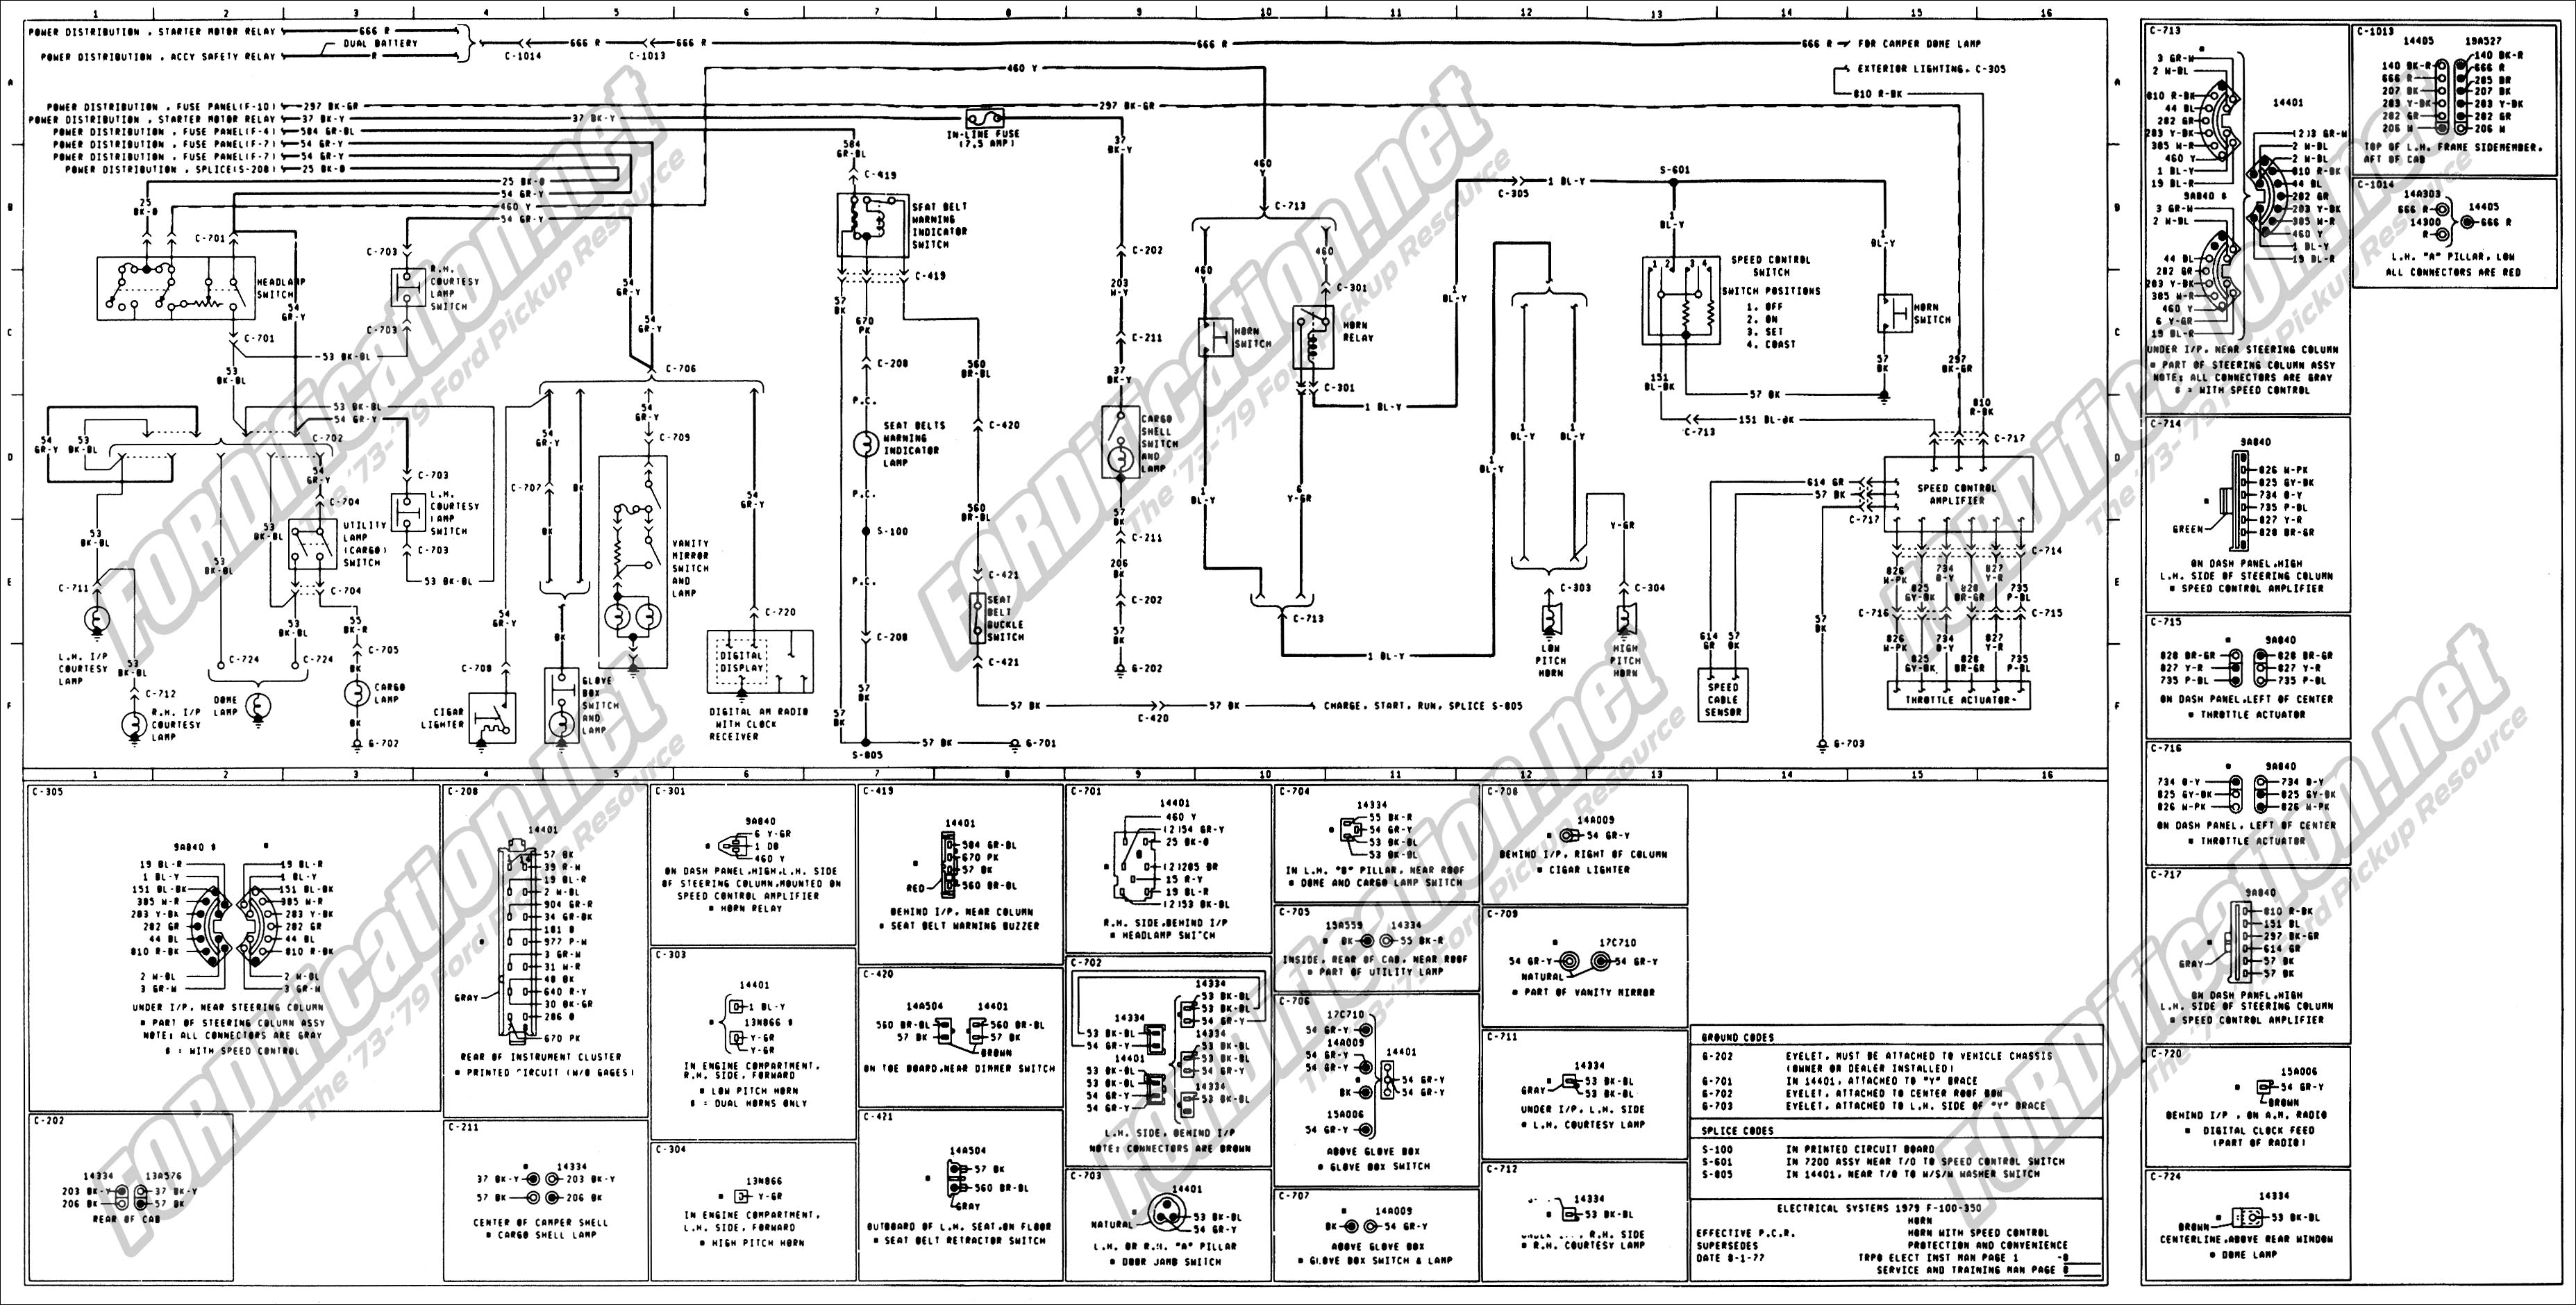 79 Ford F700 Wiring Diagram For 1988 1973 1979 Truck Diagrams U0026 Schematics Fordification Net79